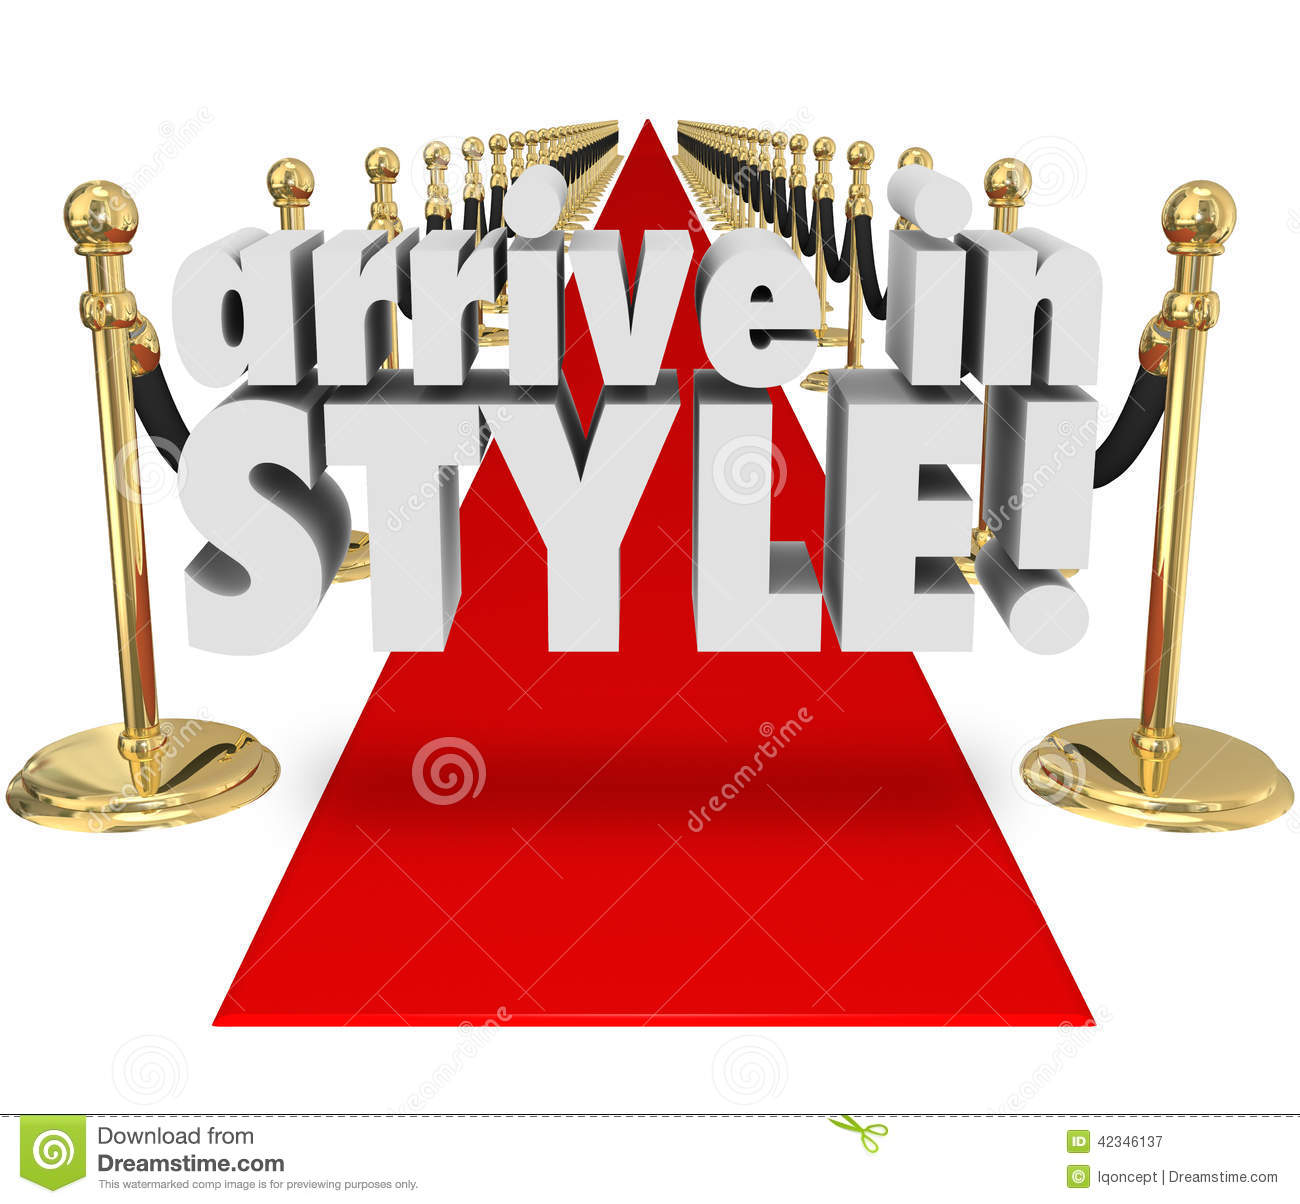 arrive in style 3d words red carpet fashion chic glamour red carpet clip art free red carpet paparazzi clip art